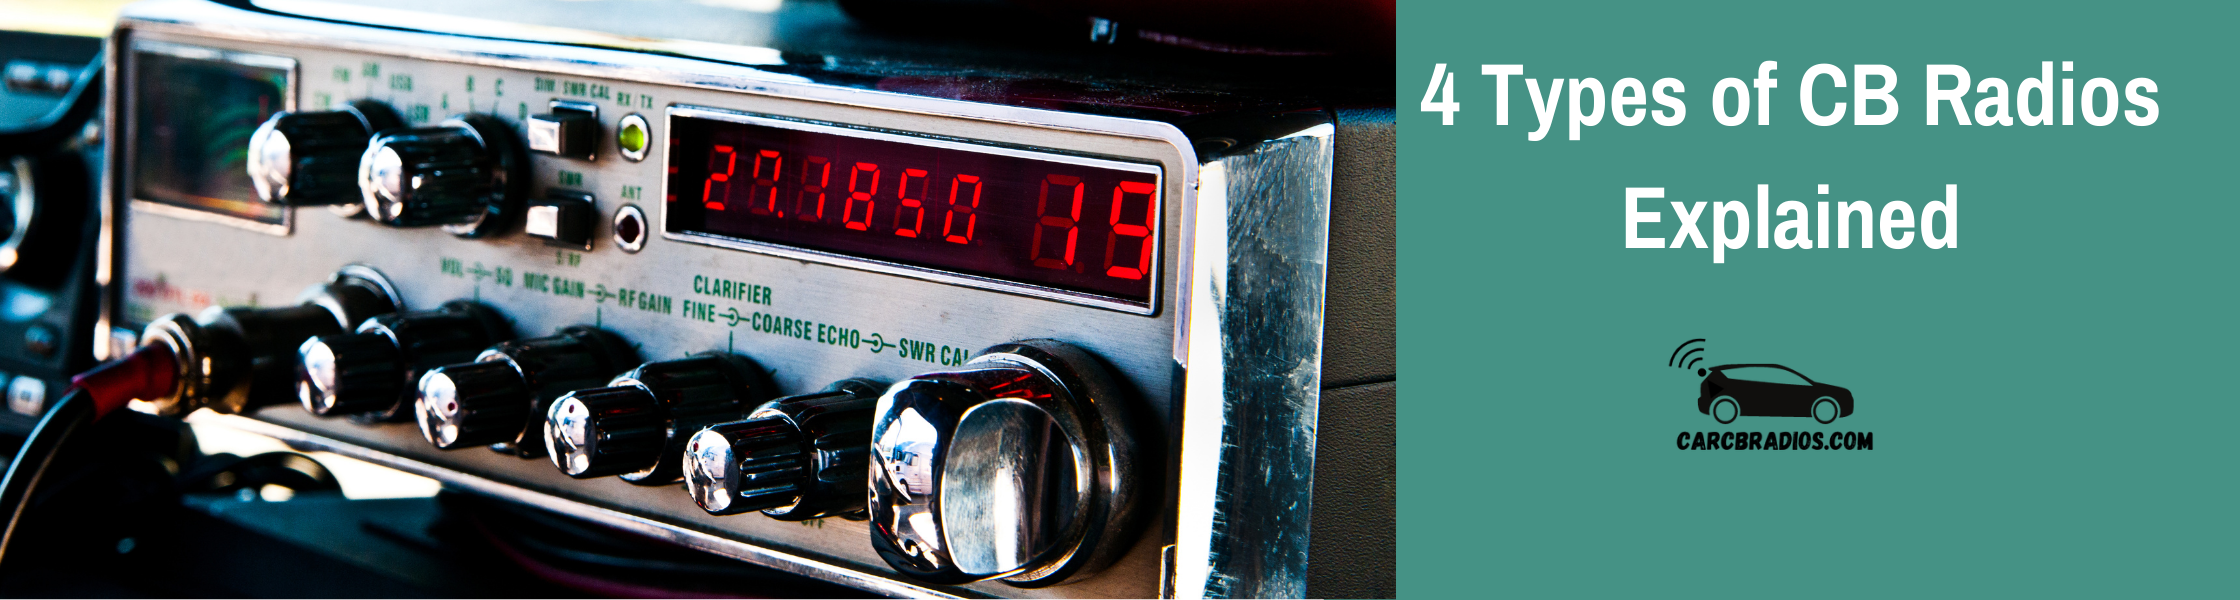 There are 4 types of CB Radio styles: Standard 2-way CB radios, classic handheld units with large antennas designed for mobile use, handheld walkie-talkies, and base CB stations built into your vehicle's dashboard so you can talk while driving.